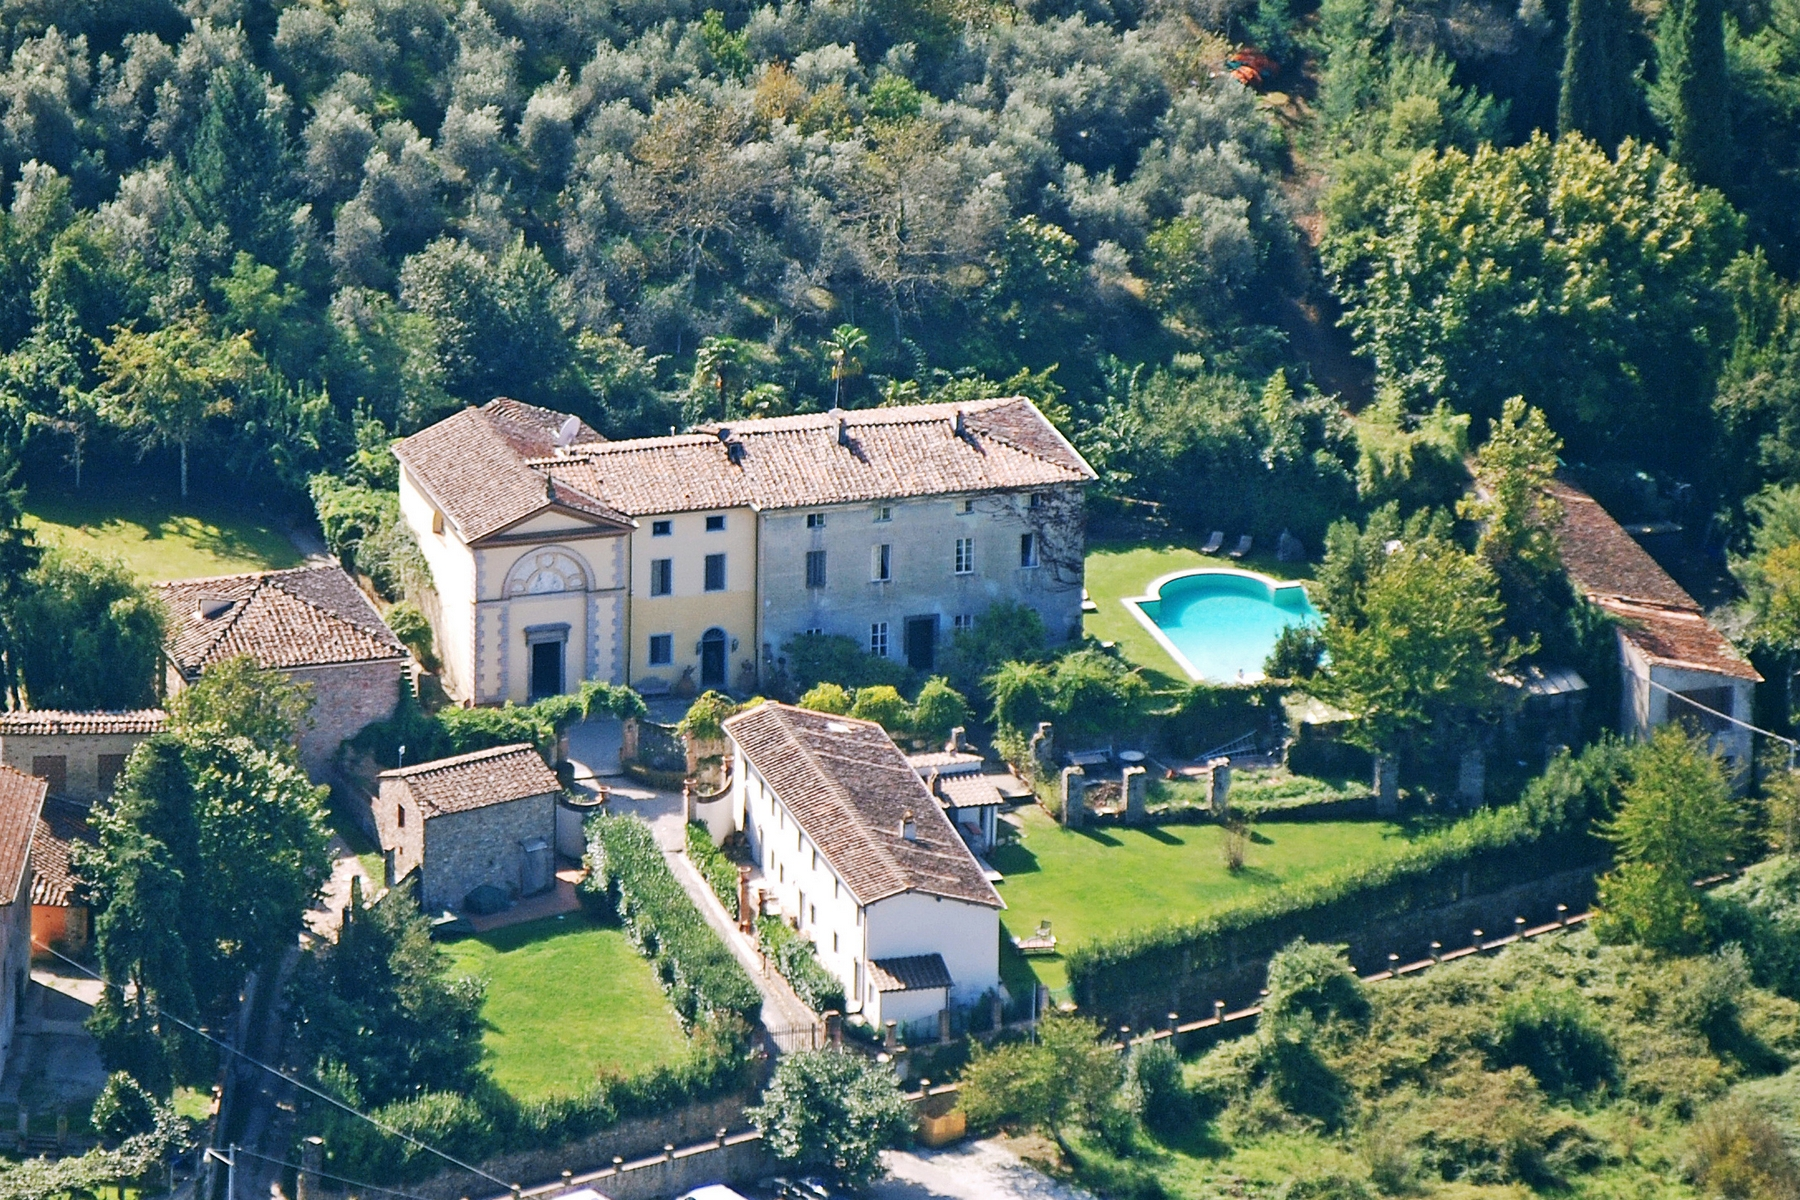 Single Family Home for Sale at Lovely 18th century villa with pool Via di Valle Lucca, Lucca 55060 Italy